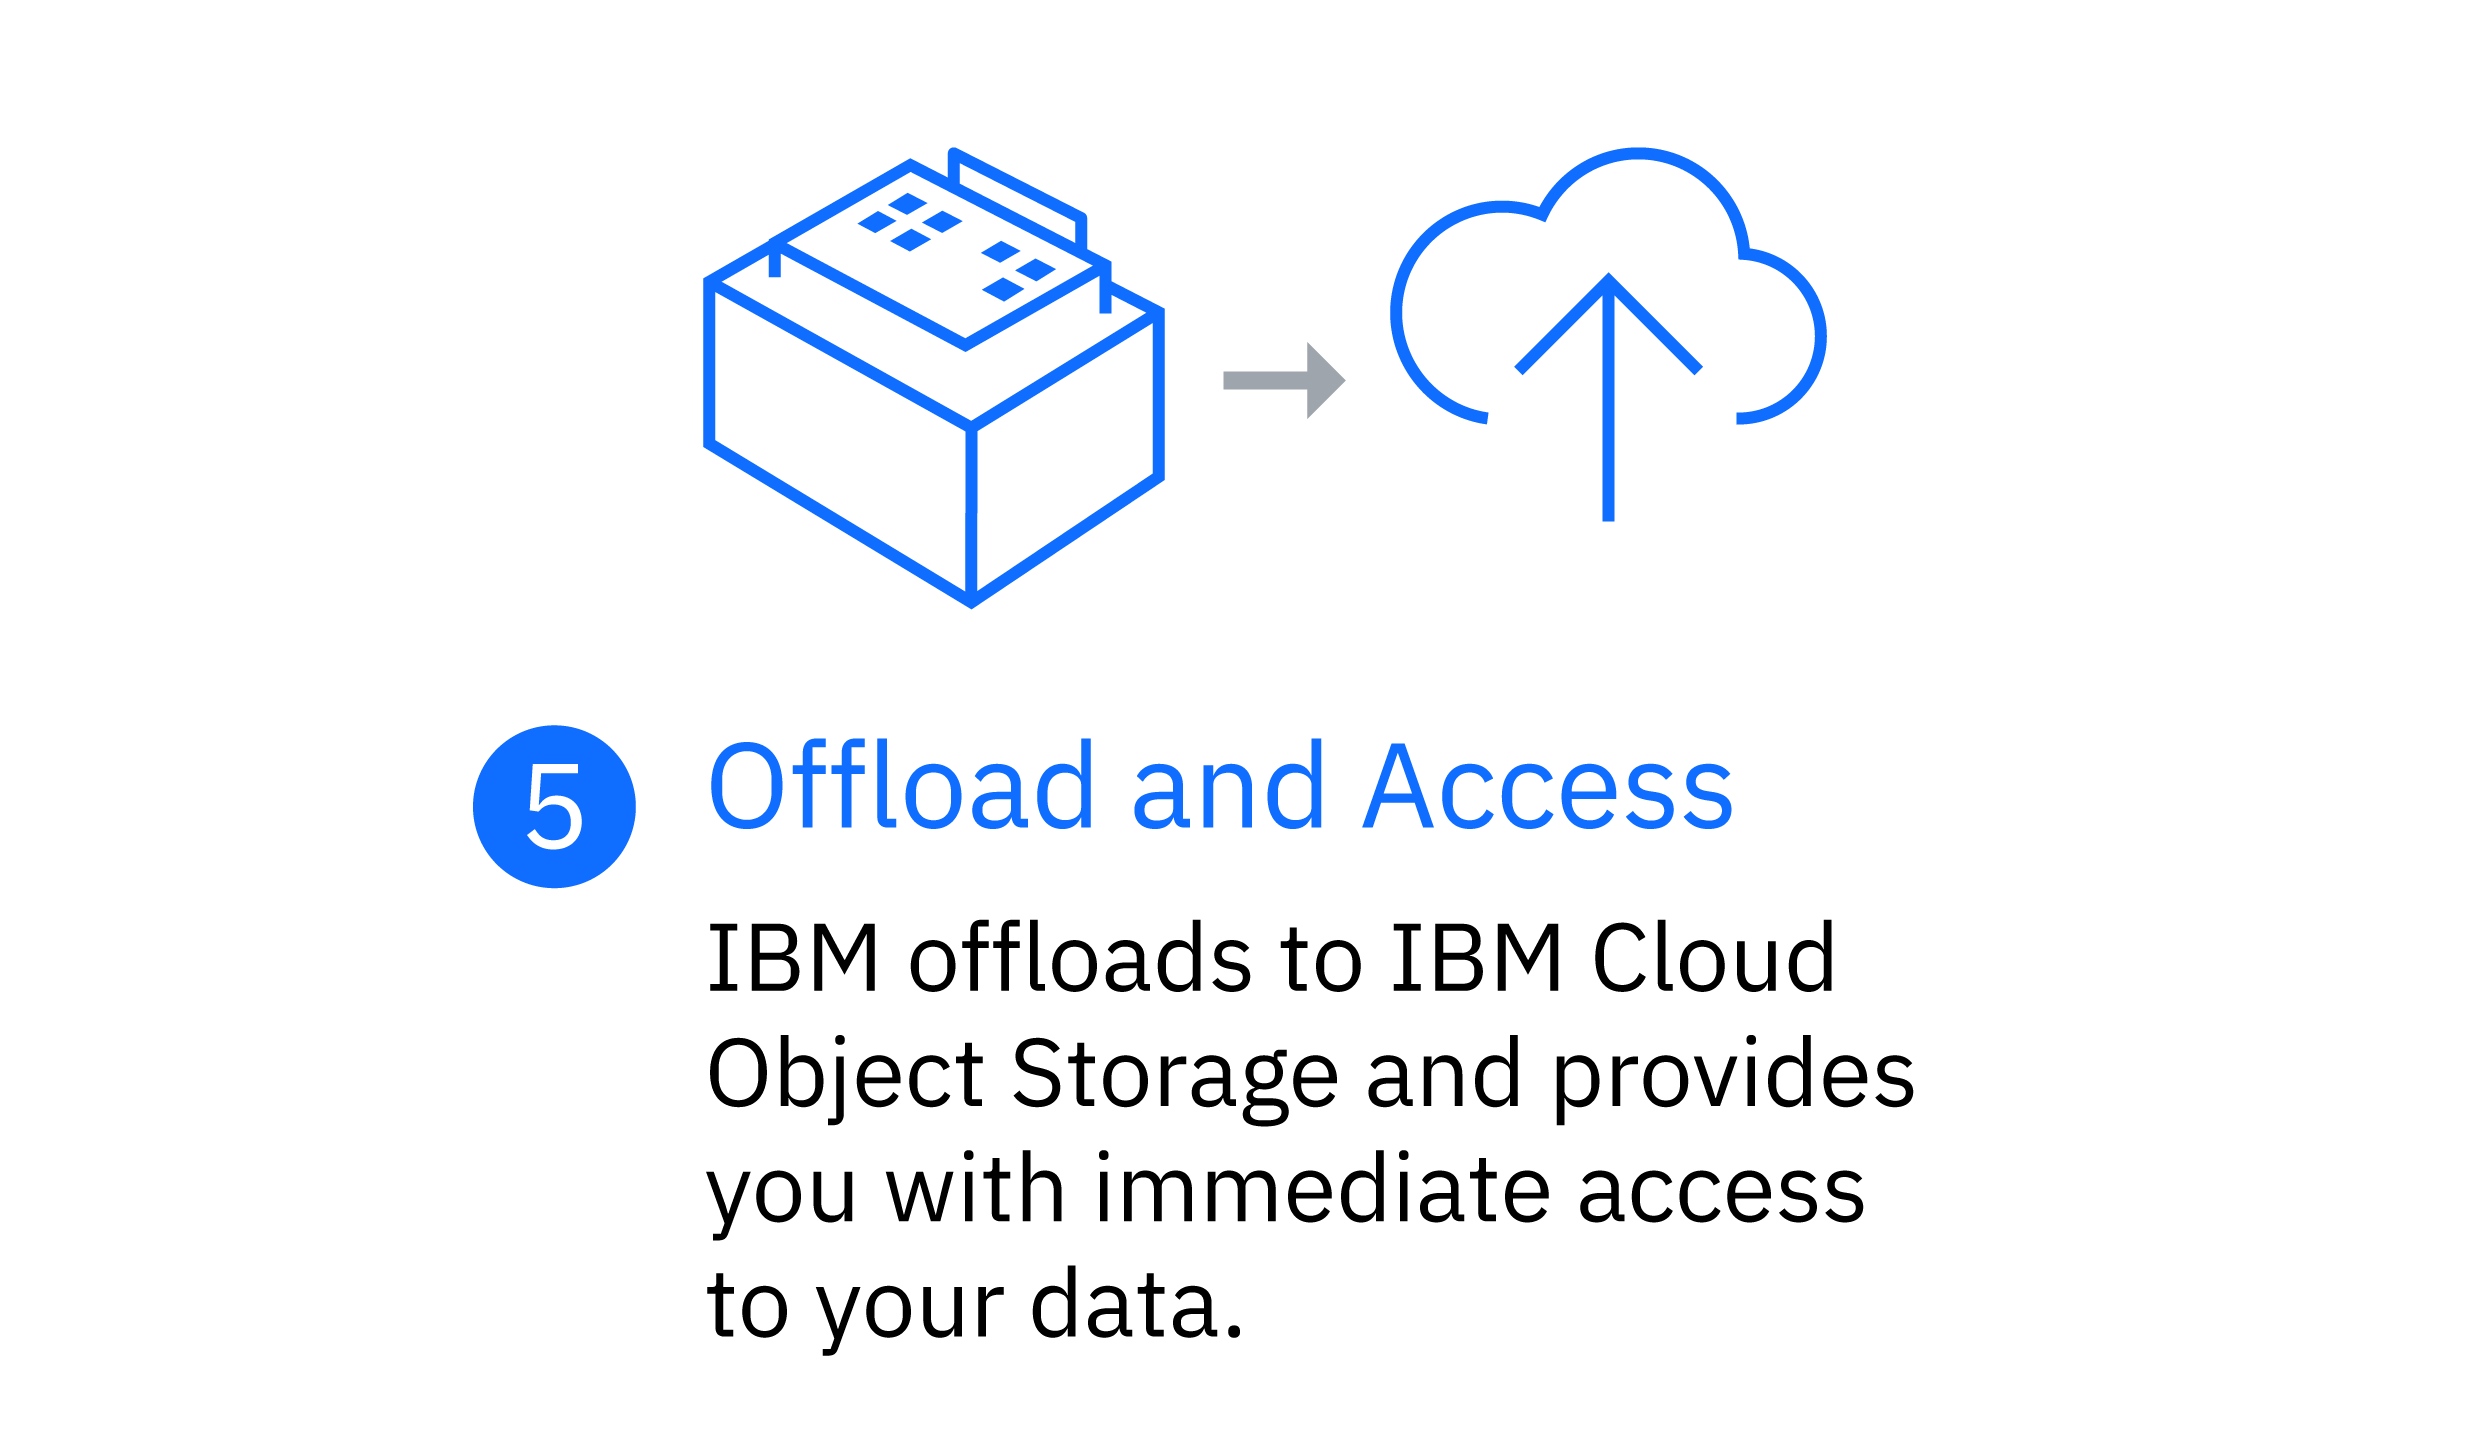 Step 5: Offload and access